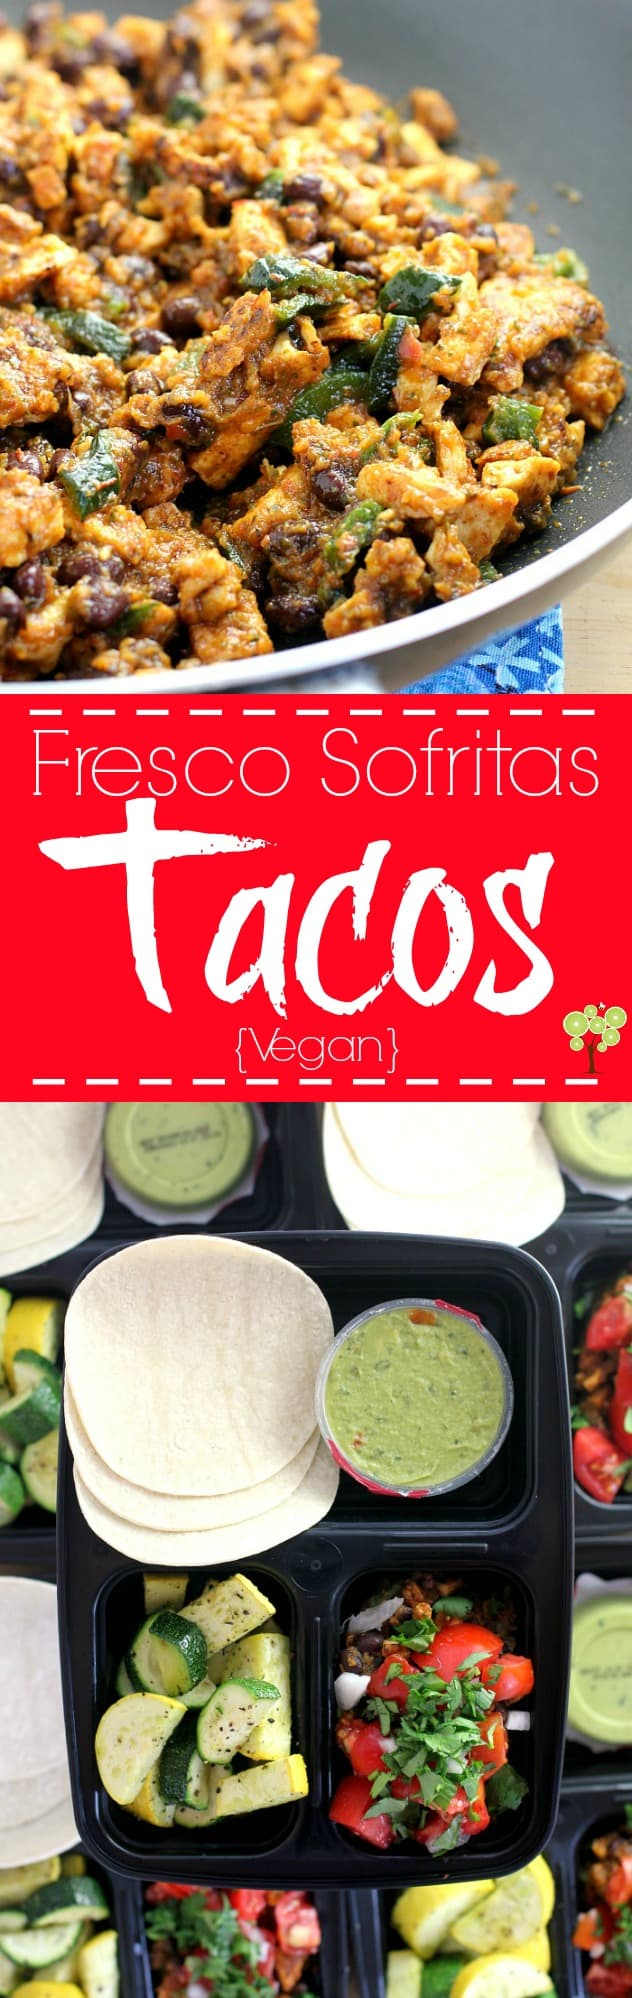 Vegan Fresco Sofritas Tacos. Make ahead then enjoy at lunch during the week. http://wp.me/p4qC4h-3nl